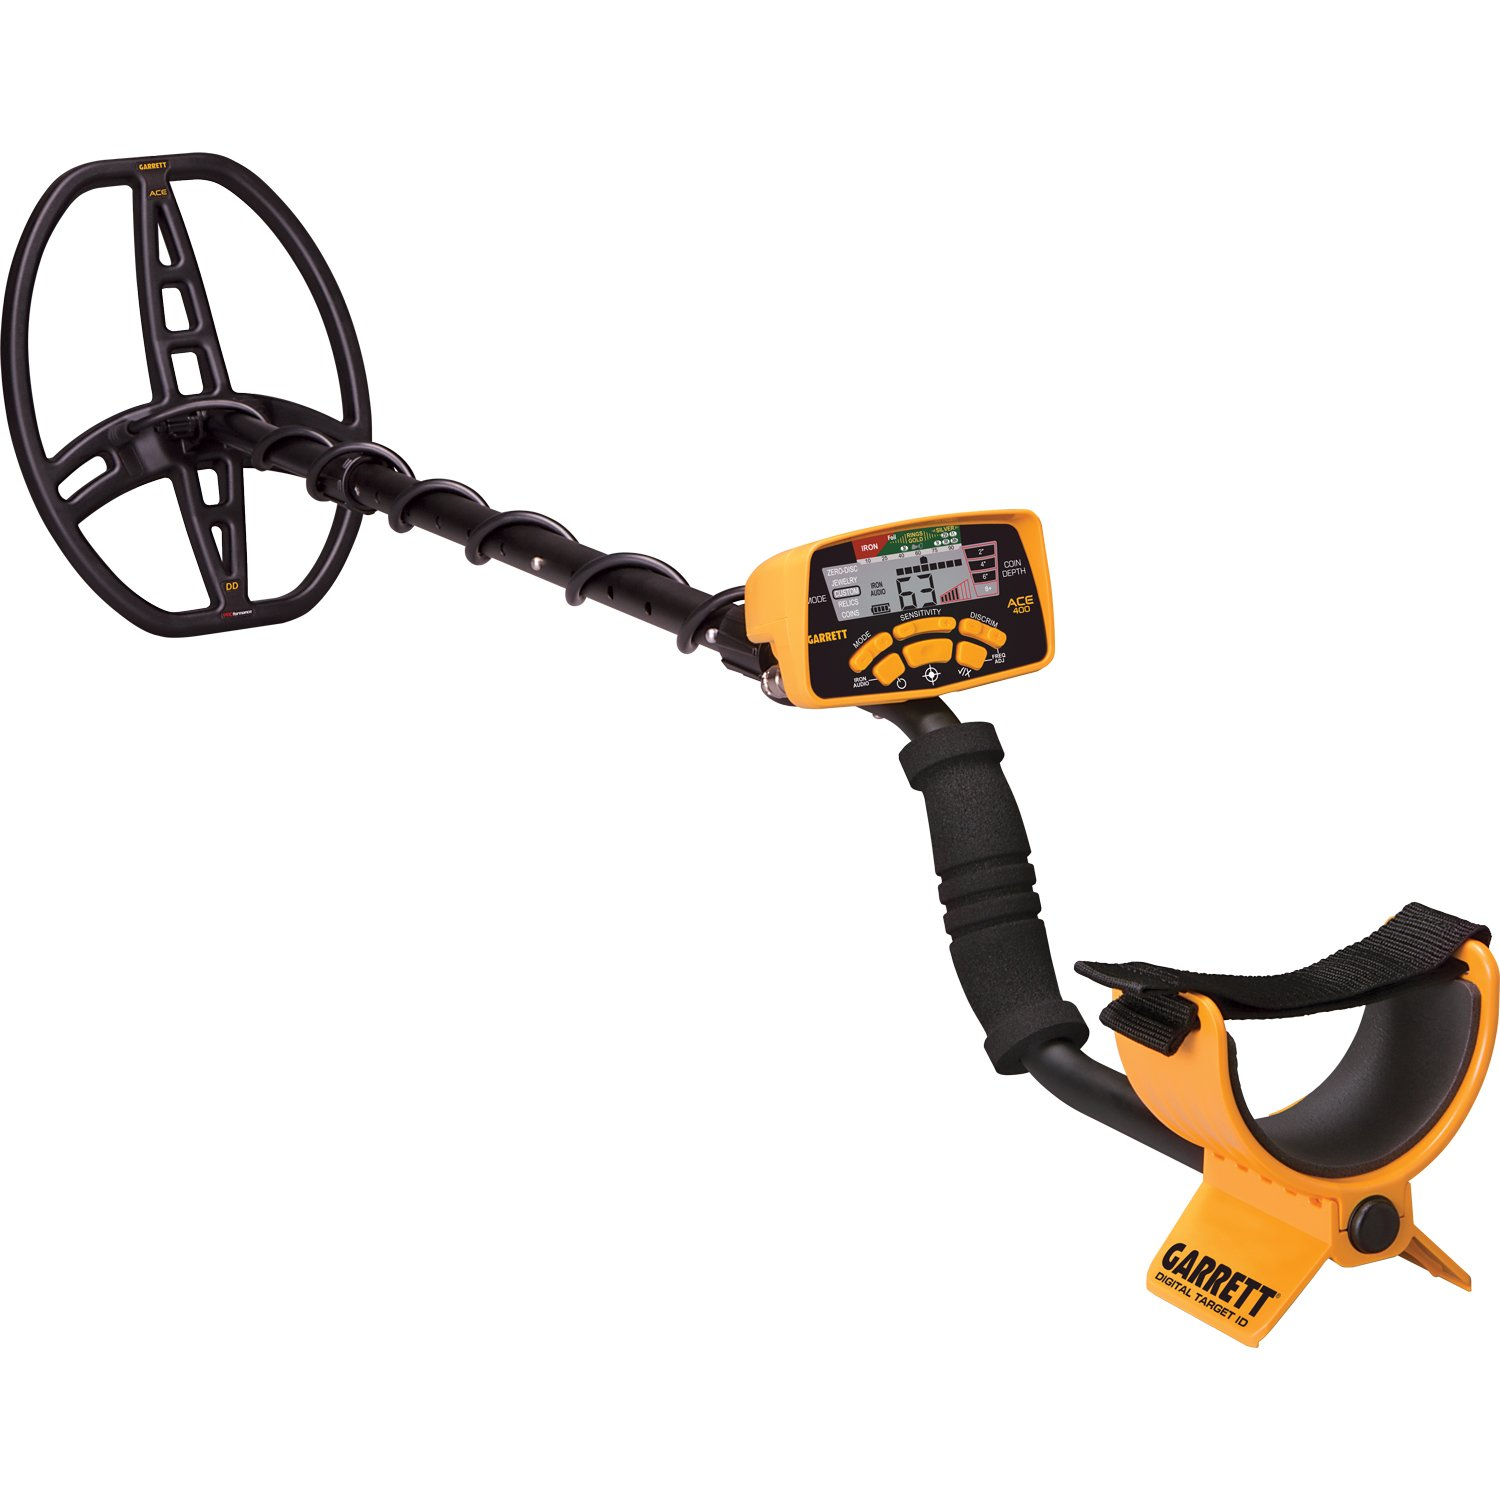 Amazon.com : Garrett ACE 400 Metal Detector w/ Z-Lynk Wireless Audio System & Pro Pointer AT : Garden & Outdoor